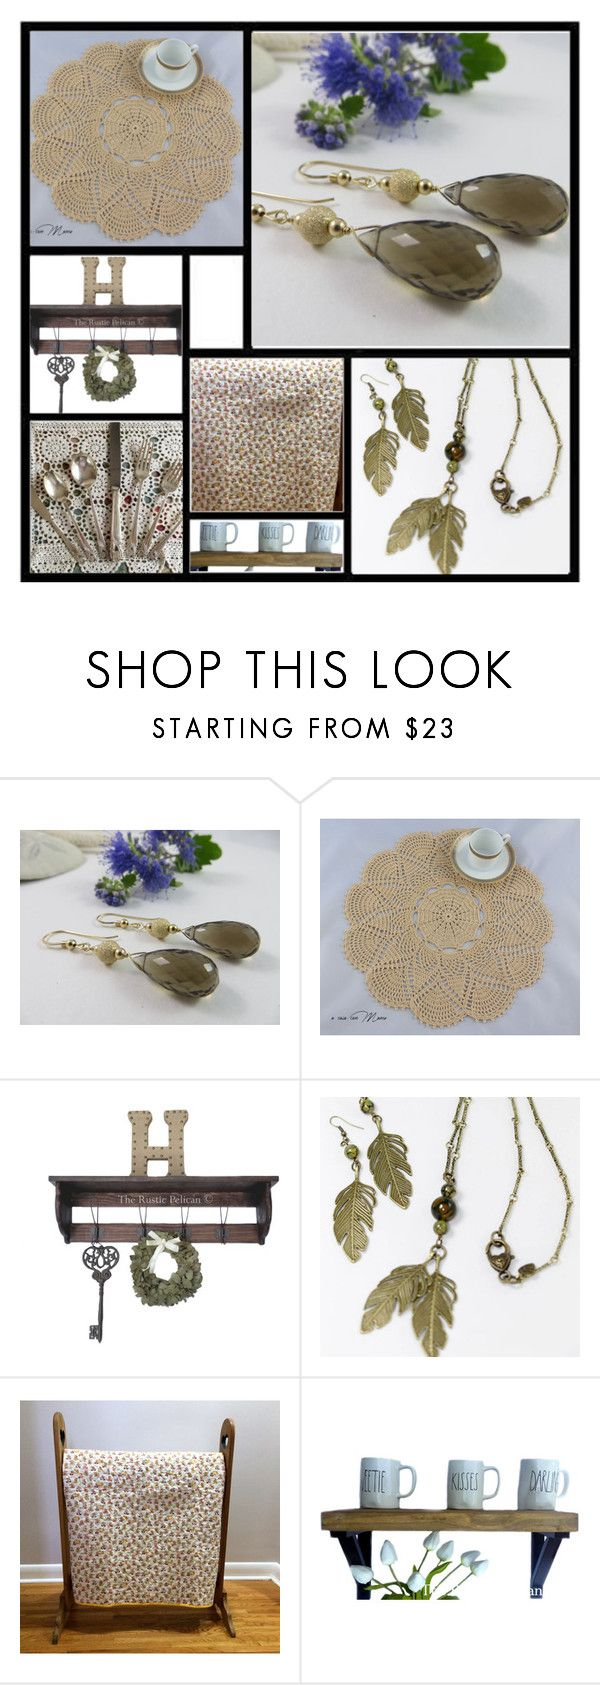 amazing gifts for mom by therusticpelican on polyvore featuring  - amazing gifts for mom by therusticpelican on polyvore featuringinternational silver modern contemporary